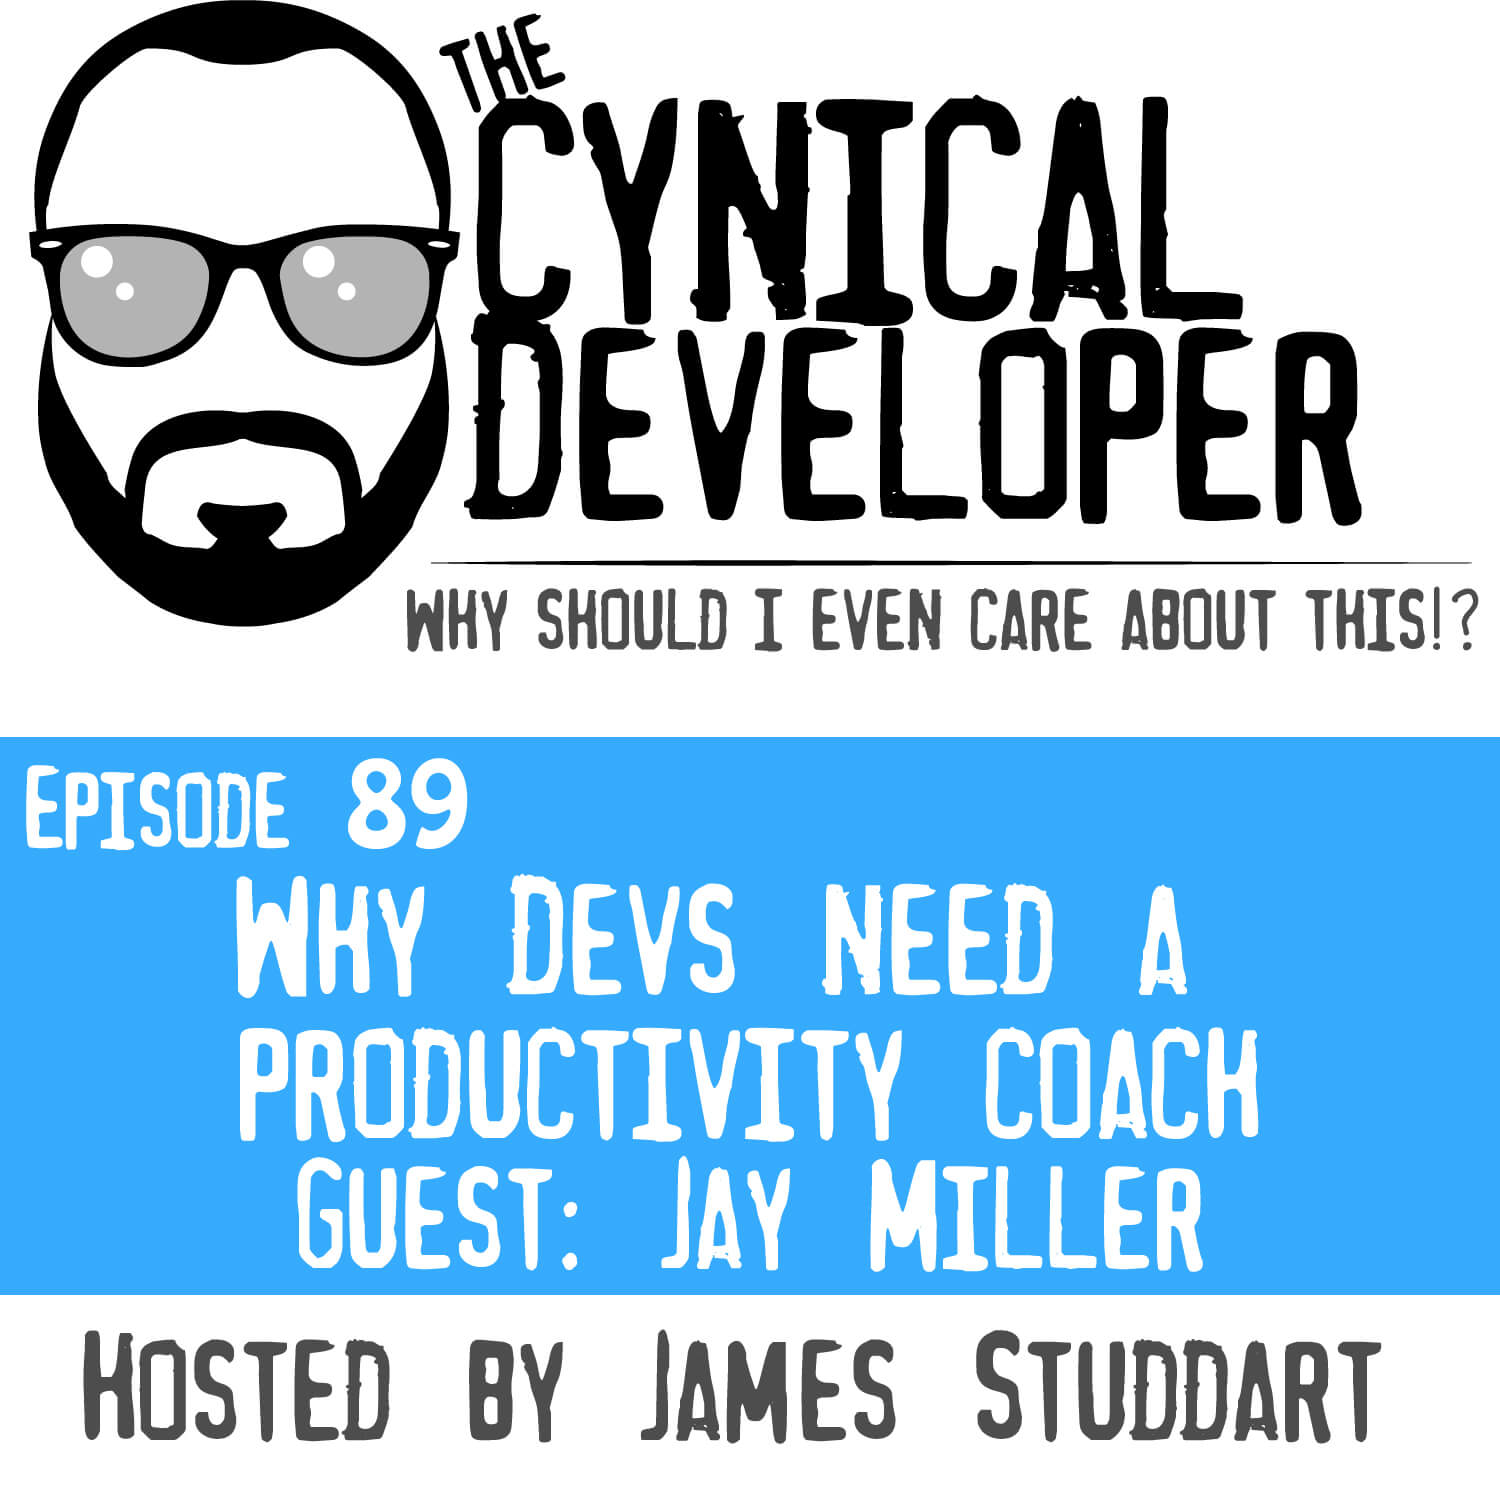 Episode 89 - Why Devs need a Productivity Coach